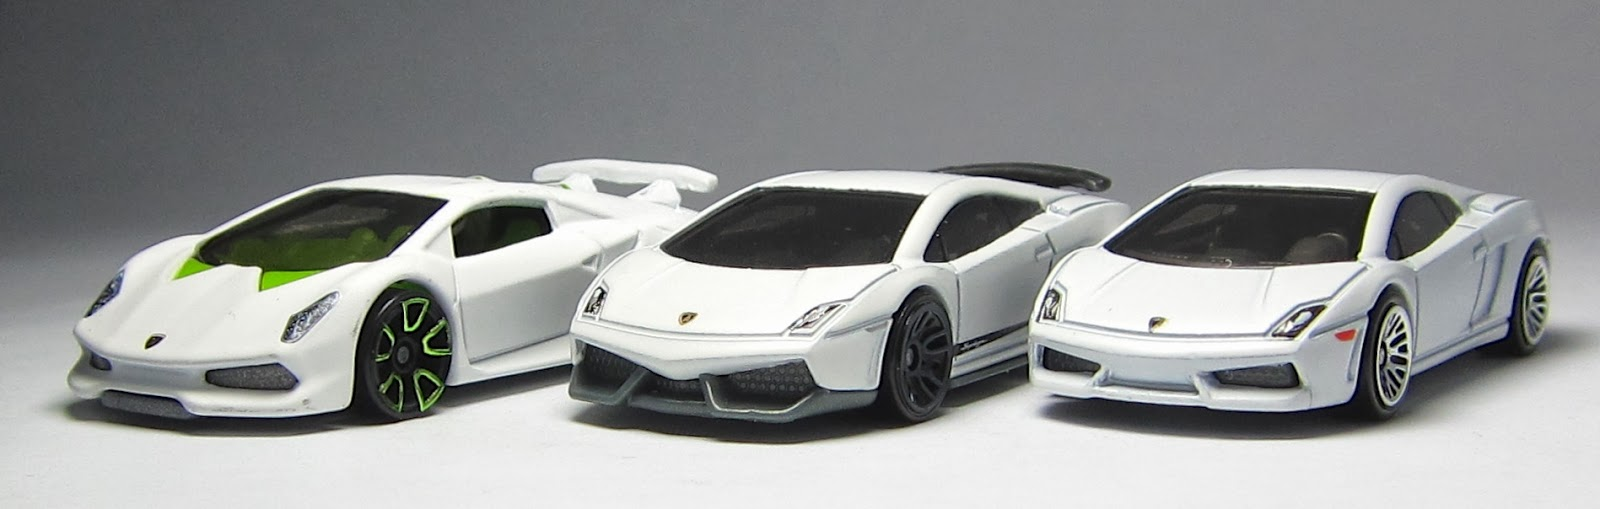 First Look: Hot Wheels Lamborghini Sesto Elemento ...